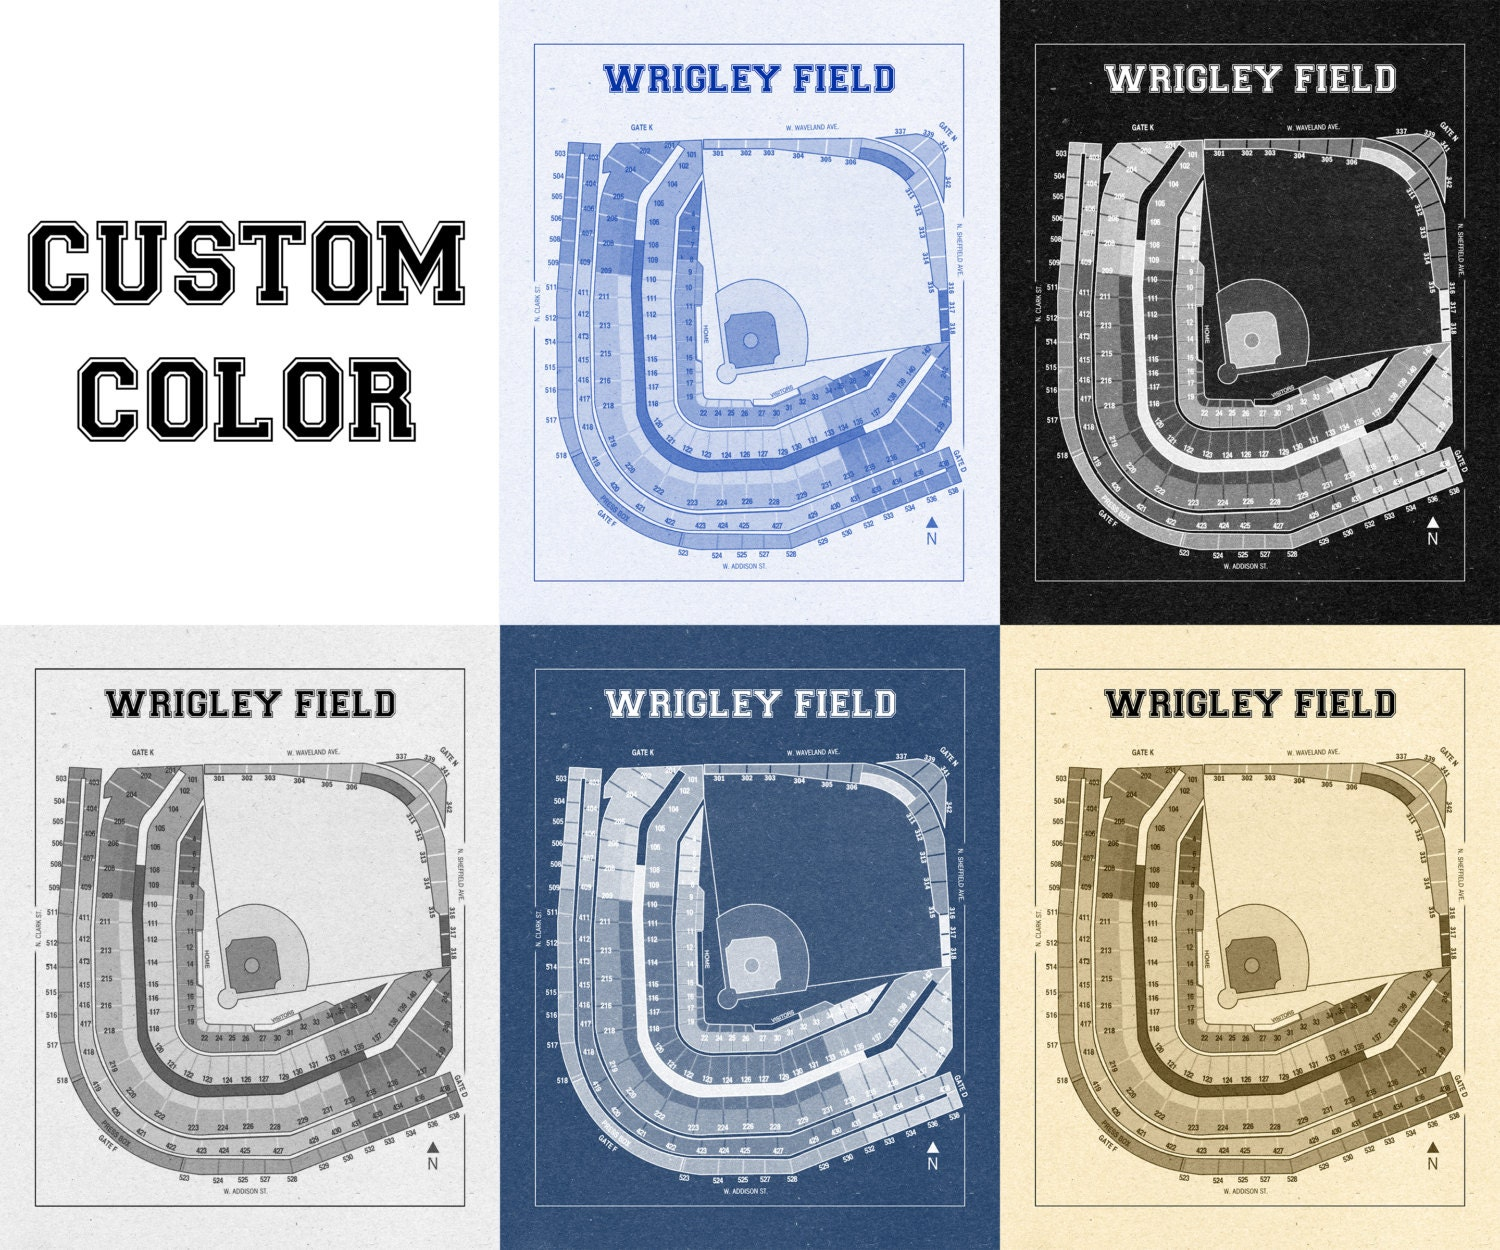 Vintage print of wrigley field seating chart blueprint chicago cubs vintage print of wrigley field seating chart blueprint chicago cubs illinois photo paper matte canvas sports art baseball diagram sports malvernweather Choice Image